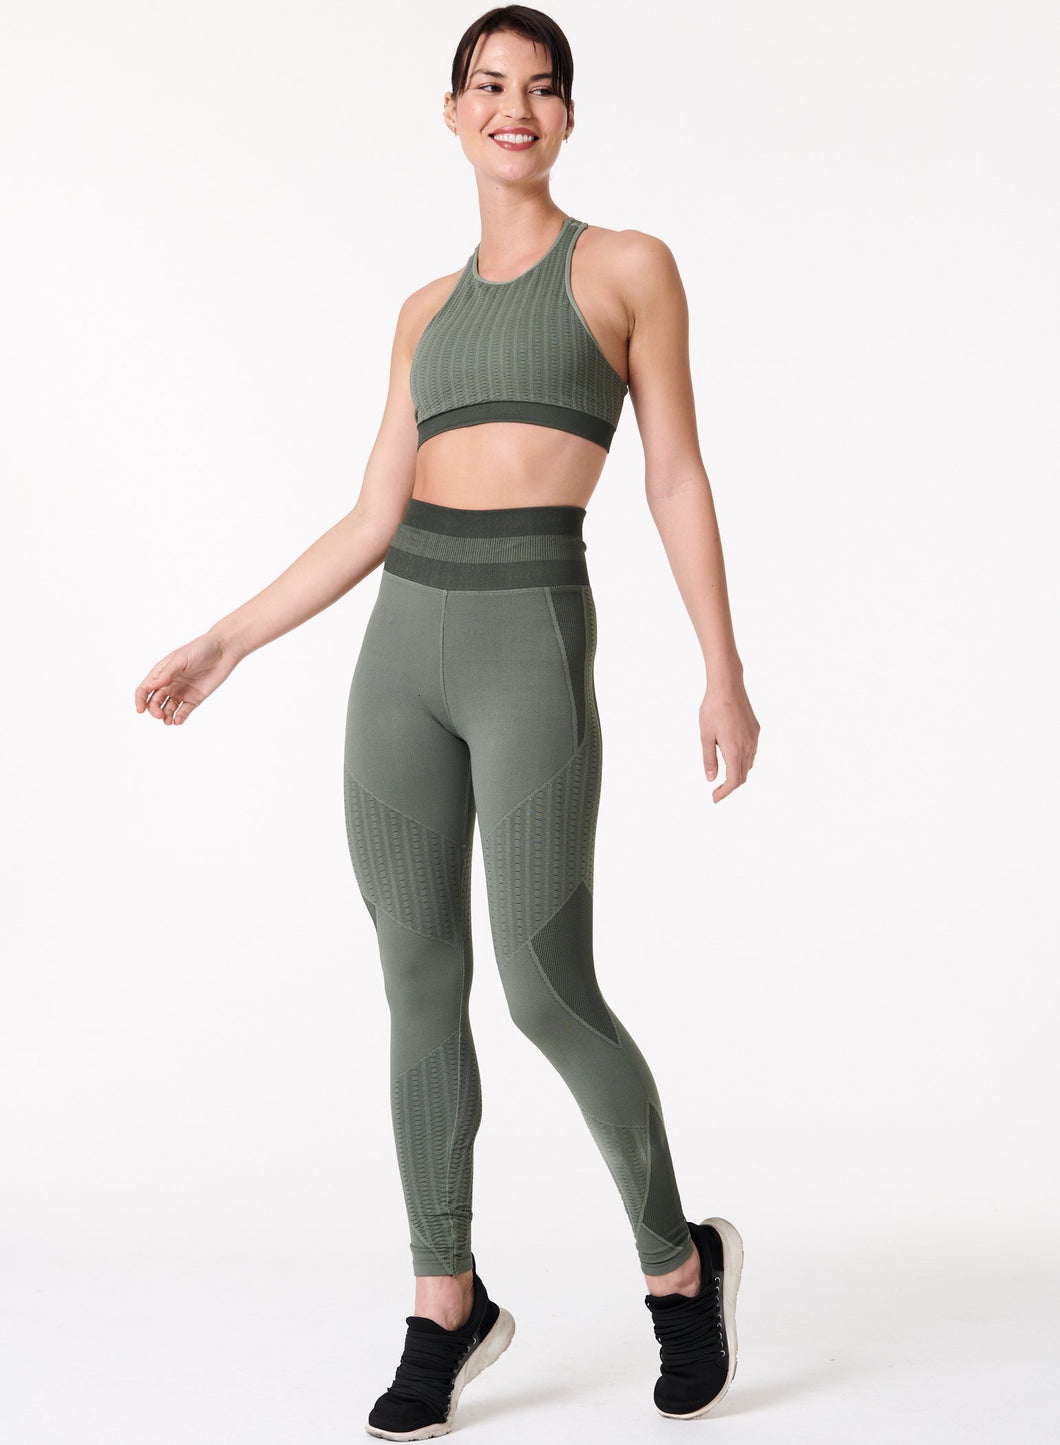 The Sphere Legging by NUX Active